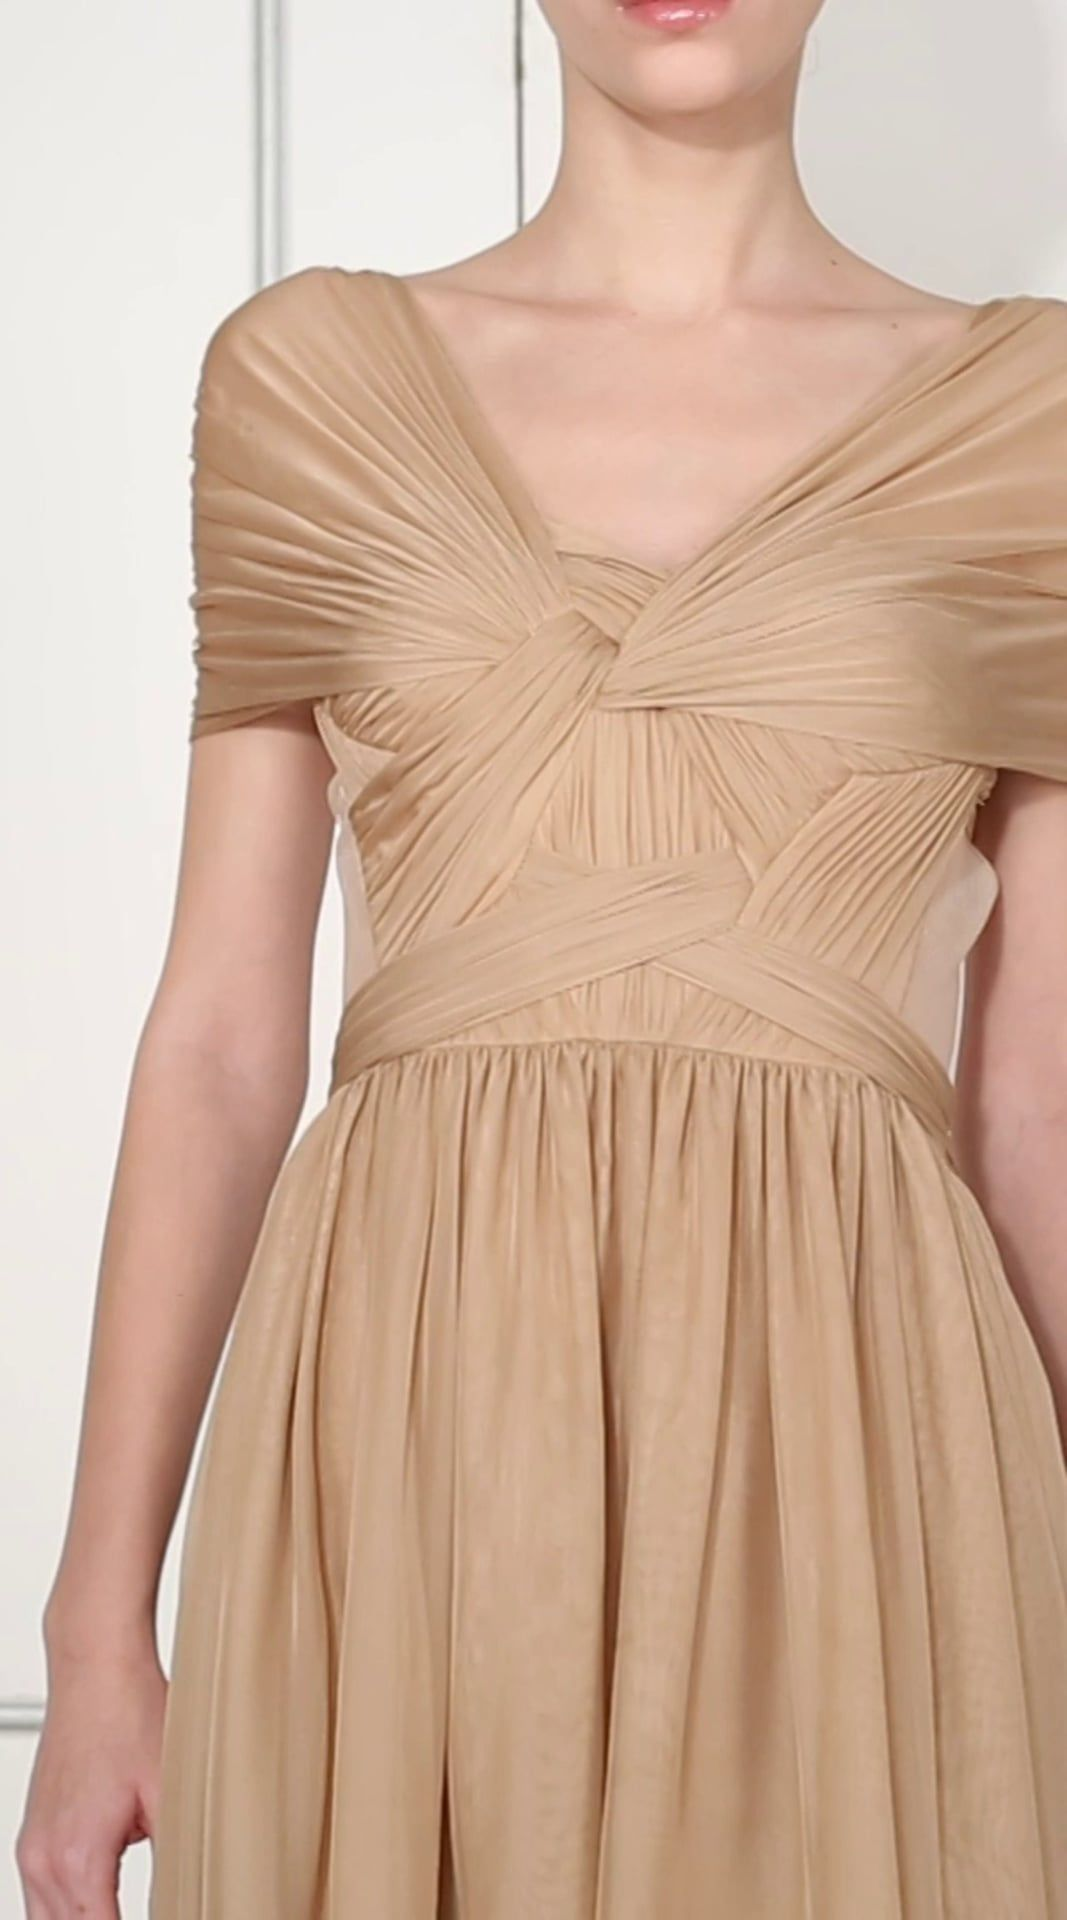 Cap sleeve prom dress inspired by demi lovato gown pinterest